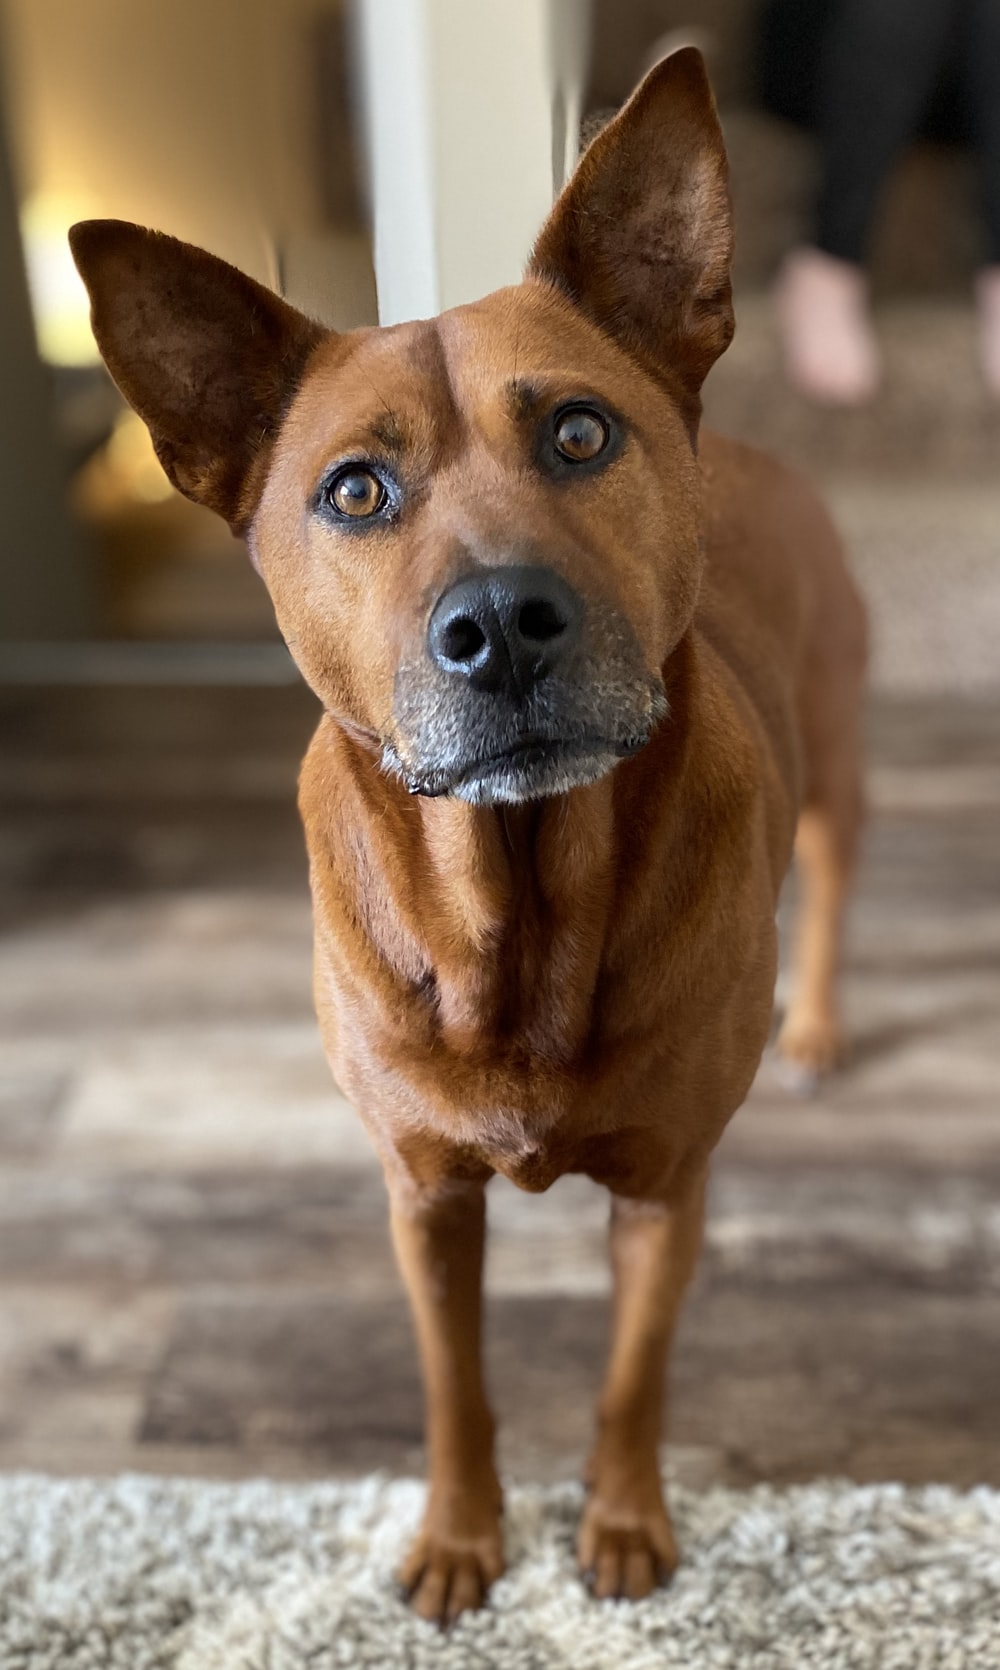 brown short coated dog on gray concrete floor